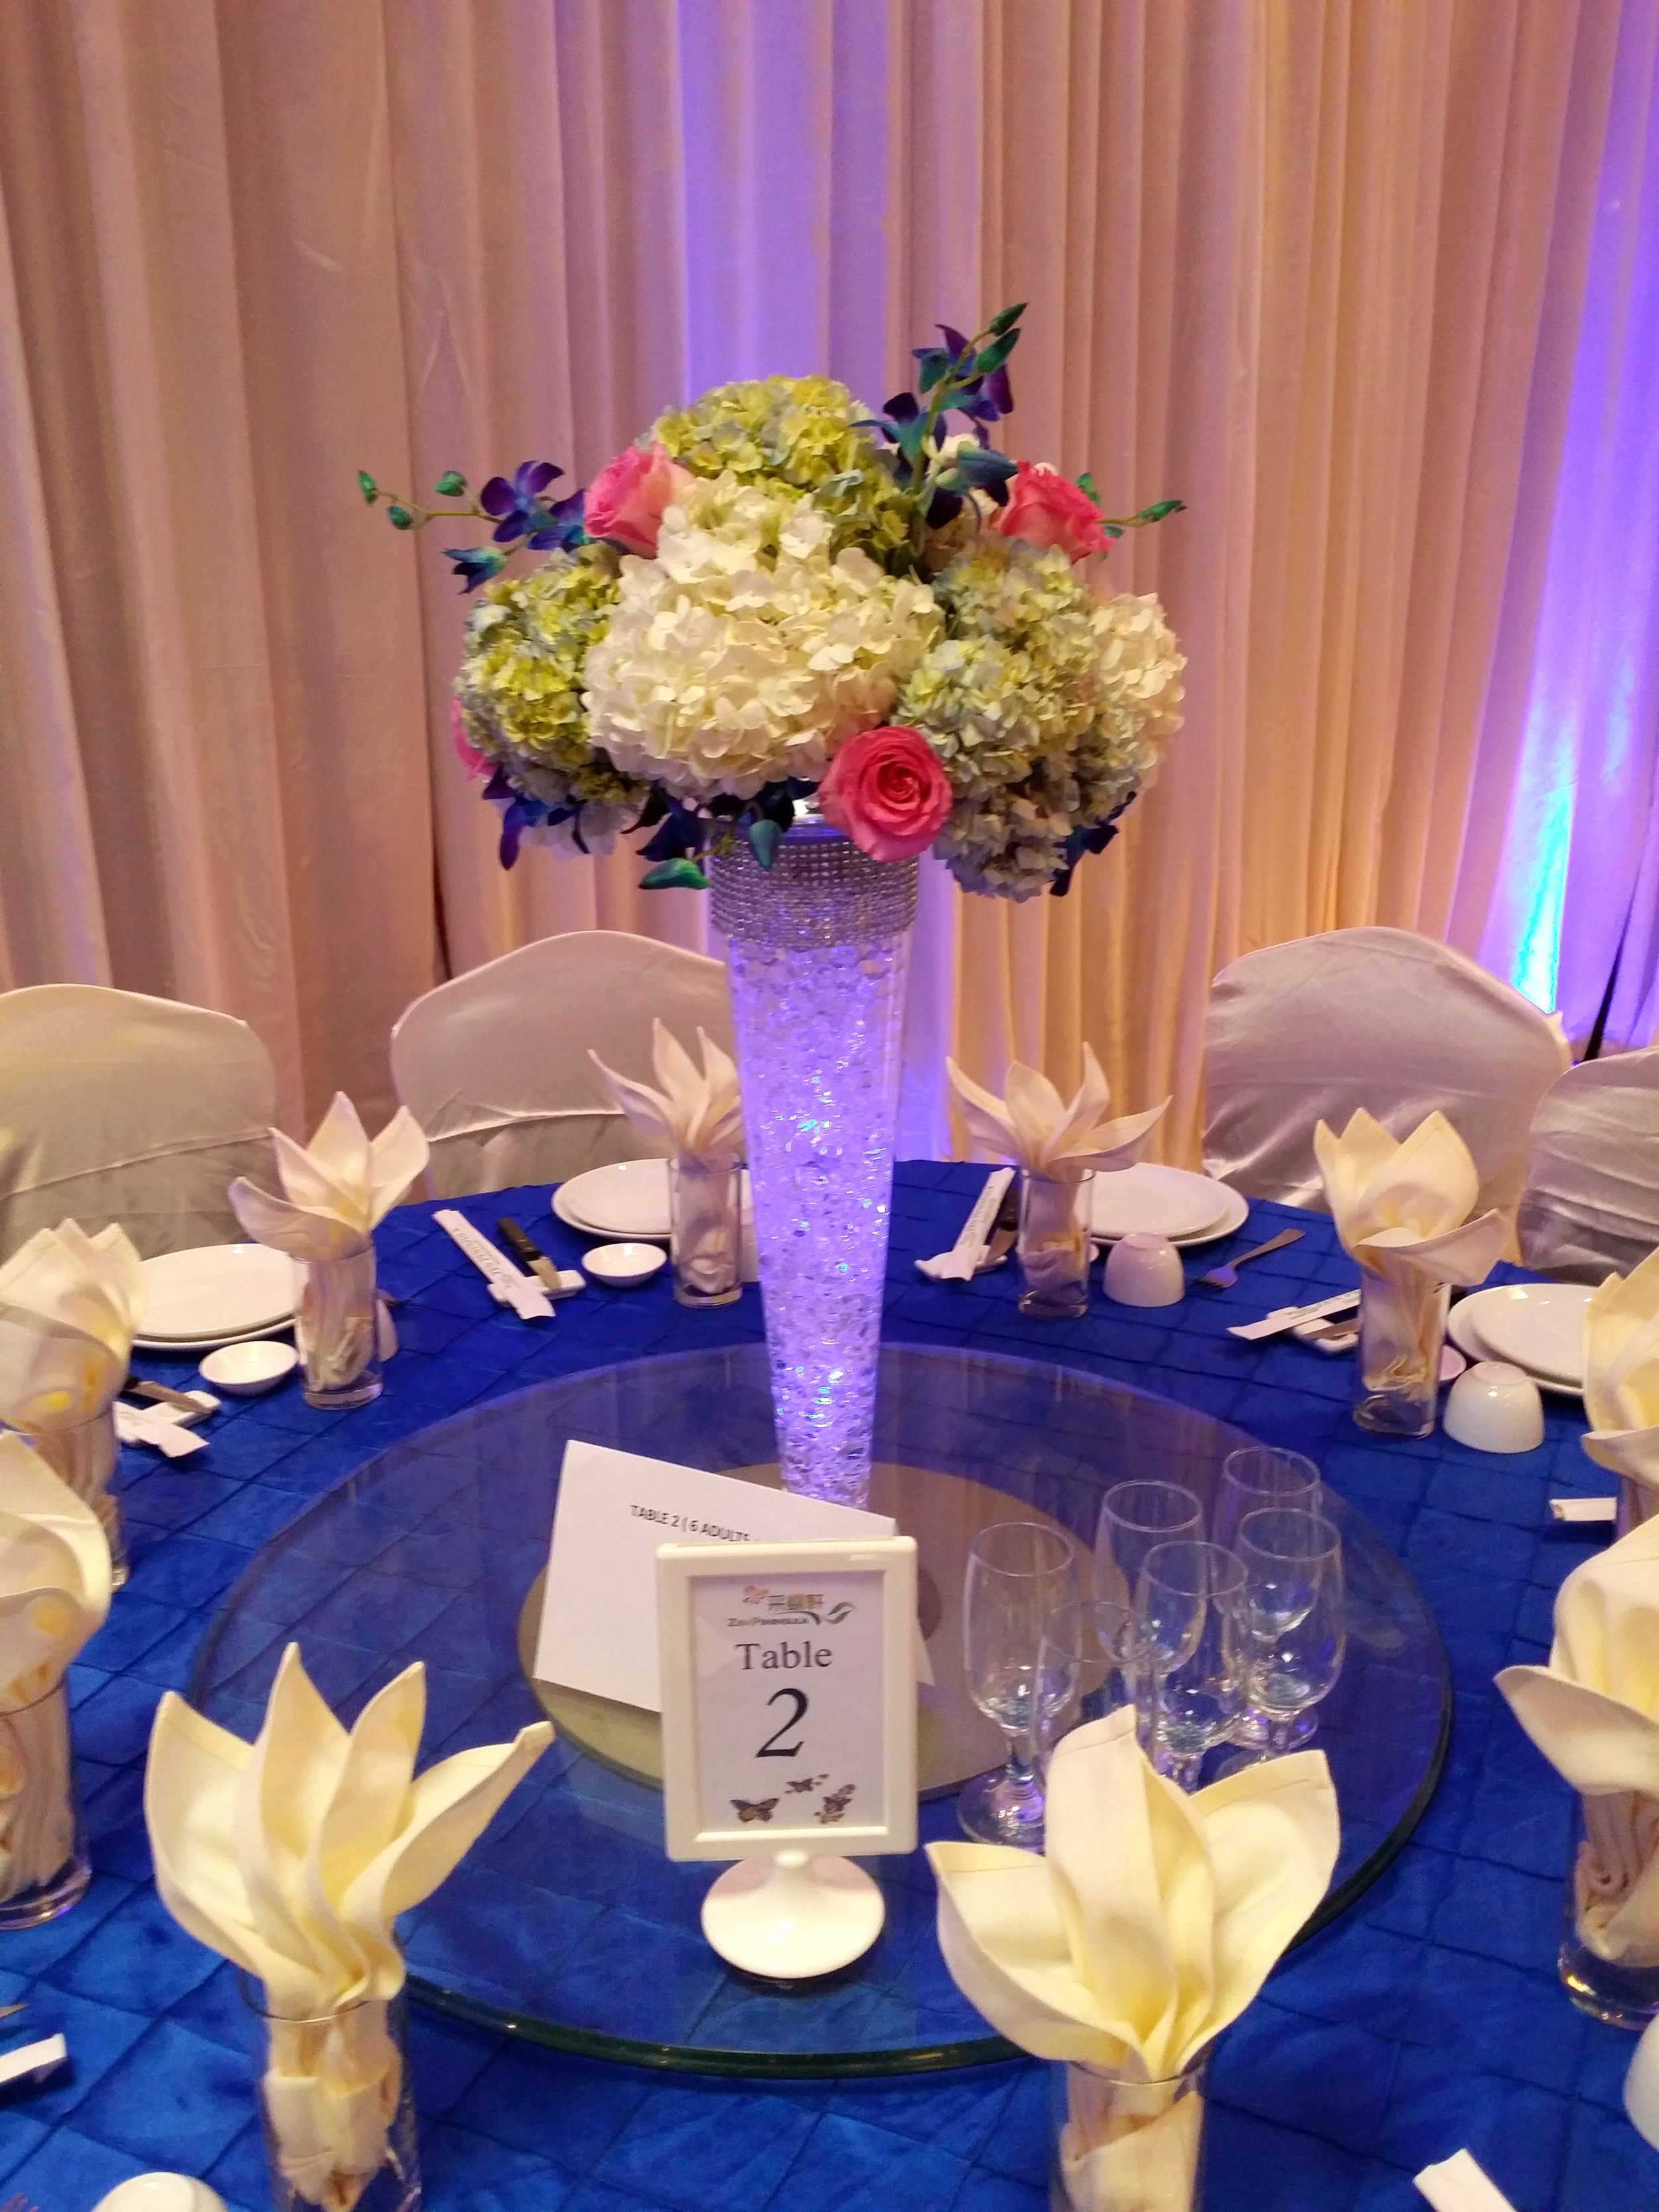 - We love creating an interesting guest table centerpiece, and the blue tablecloths allowed us to create a wedding centerpiece with height to stand out and make a statement.